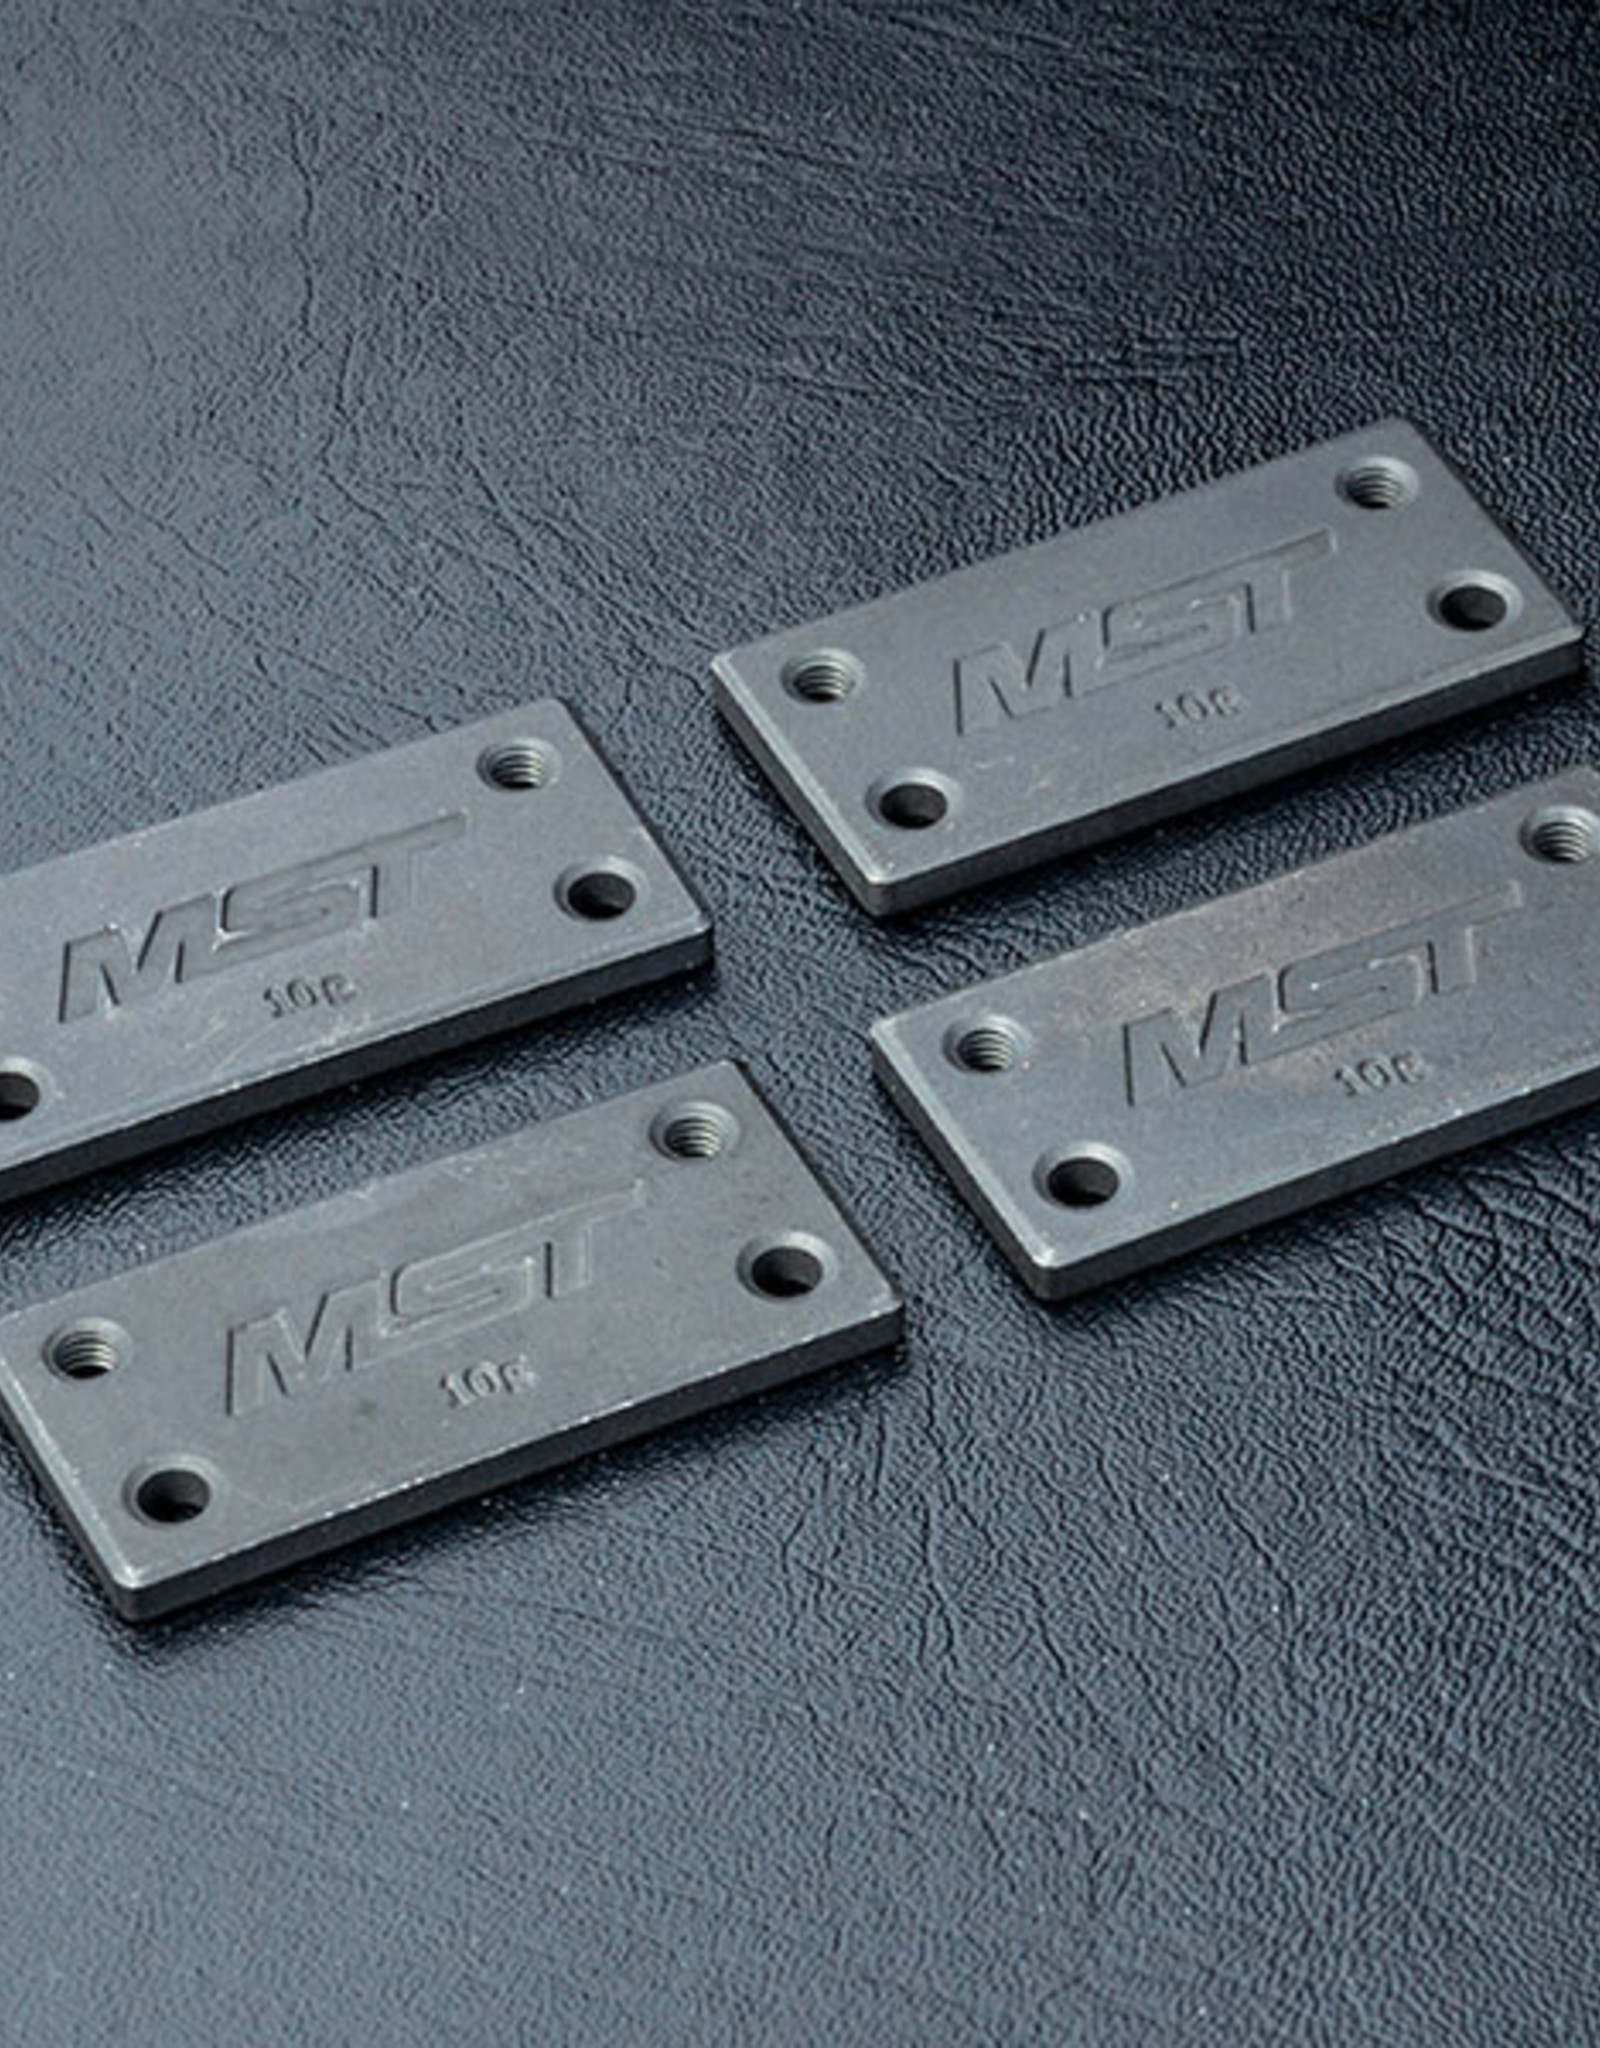 MST MXPSD820087 MST Balancing weights 10g (4) by MST